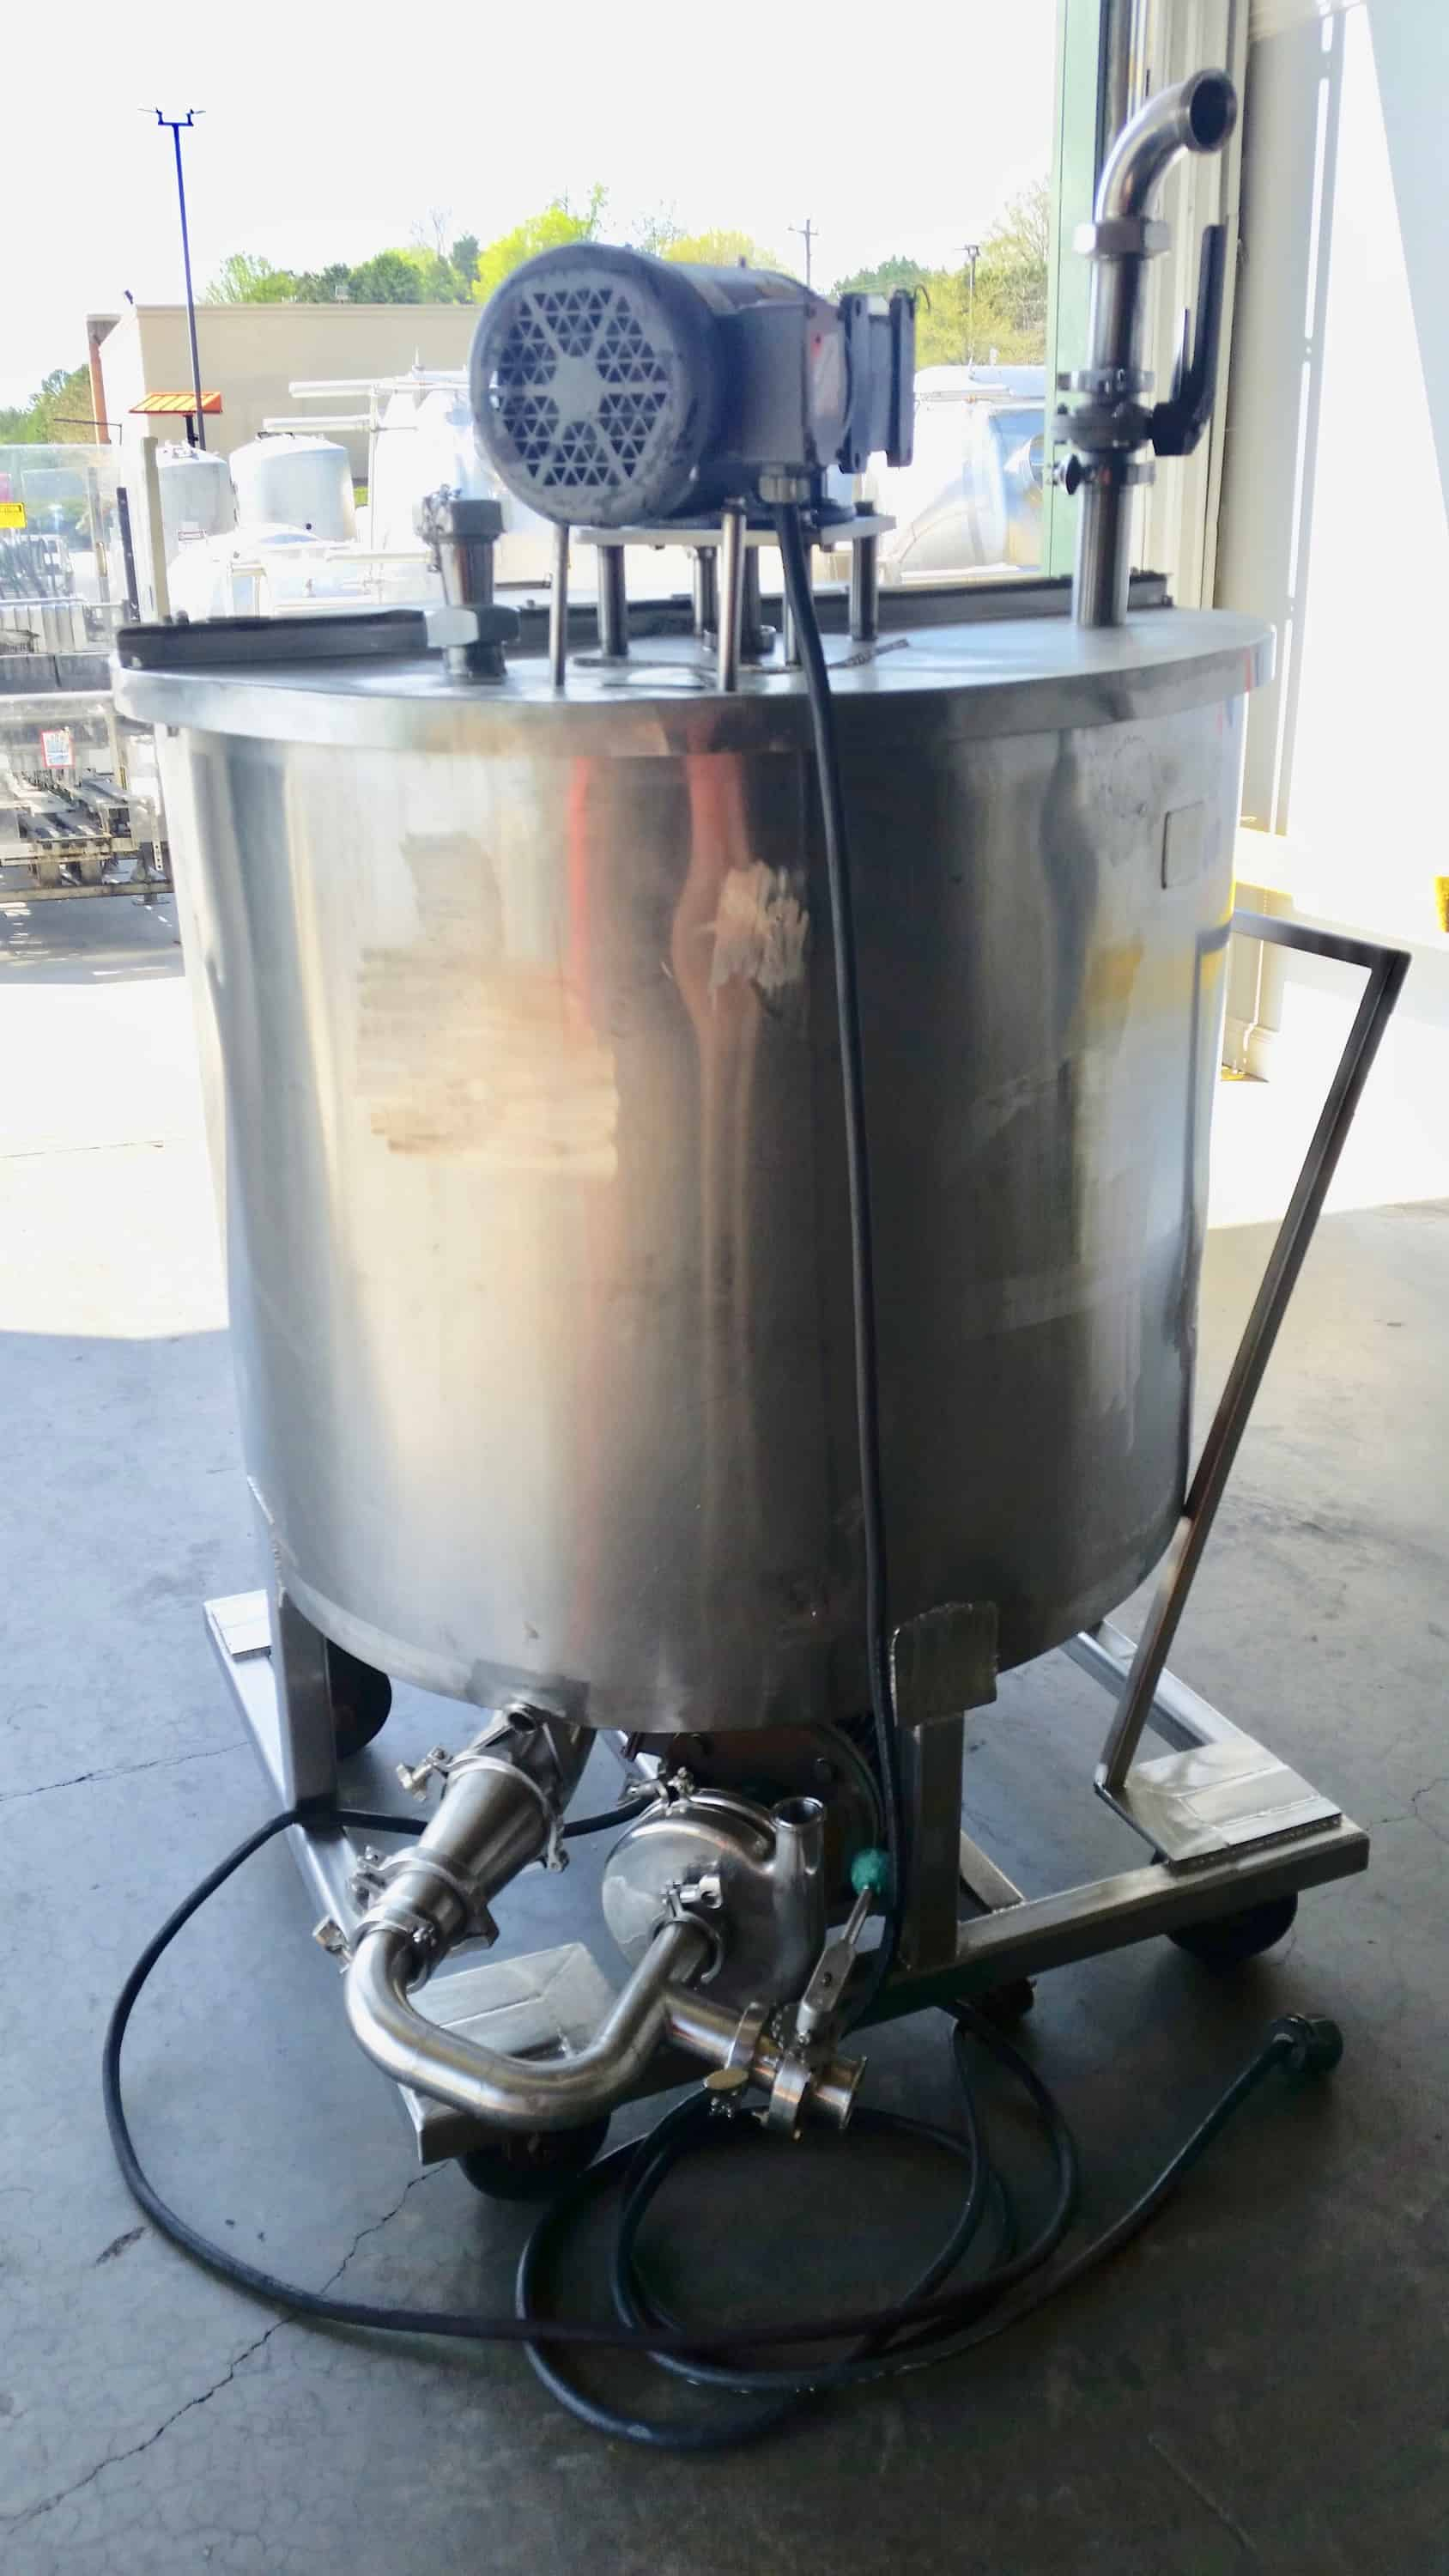 200 Gallon Batch Blending Tank, Stainless Steel, Single Agitation, Baldor 2HP 208-230/460 Volt 60 Hz 3 Phase, Mounted to a Stainless Steel Frame, Includes Tri-Clover Centrifugal Pump Model: C216MF18T-S Serial: P0874  (Located in North Carolina) ***FBEV***